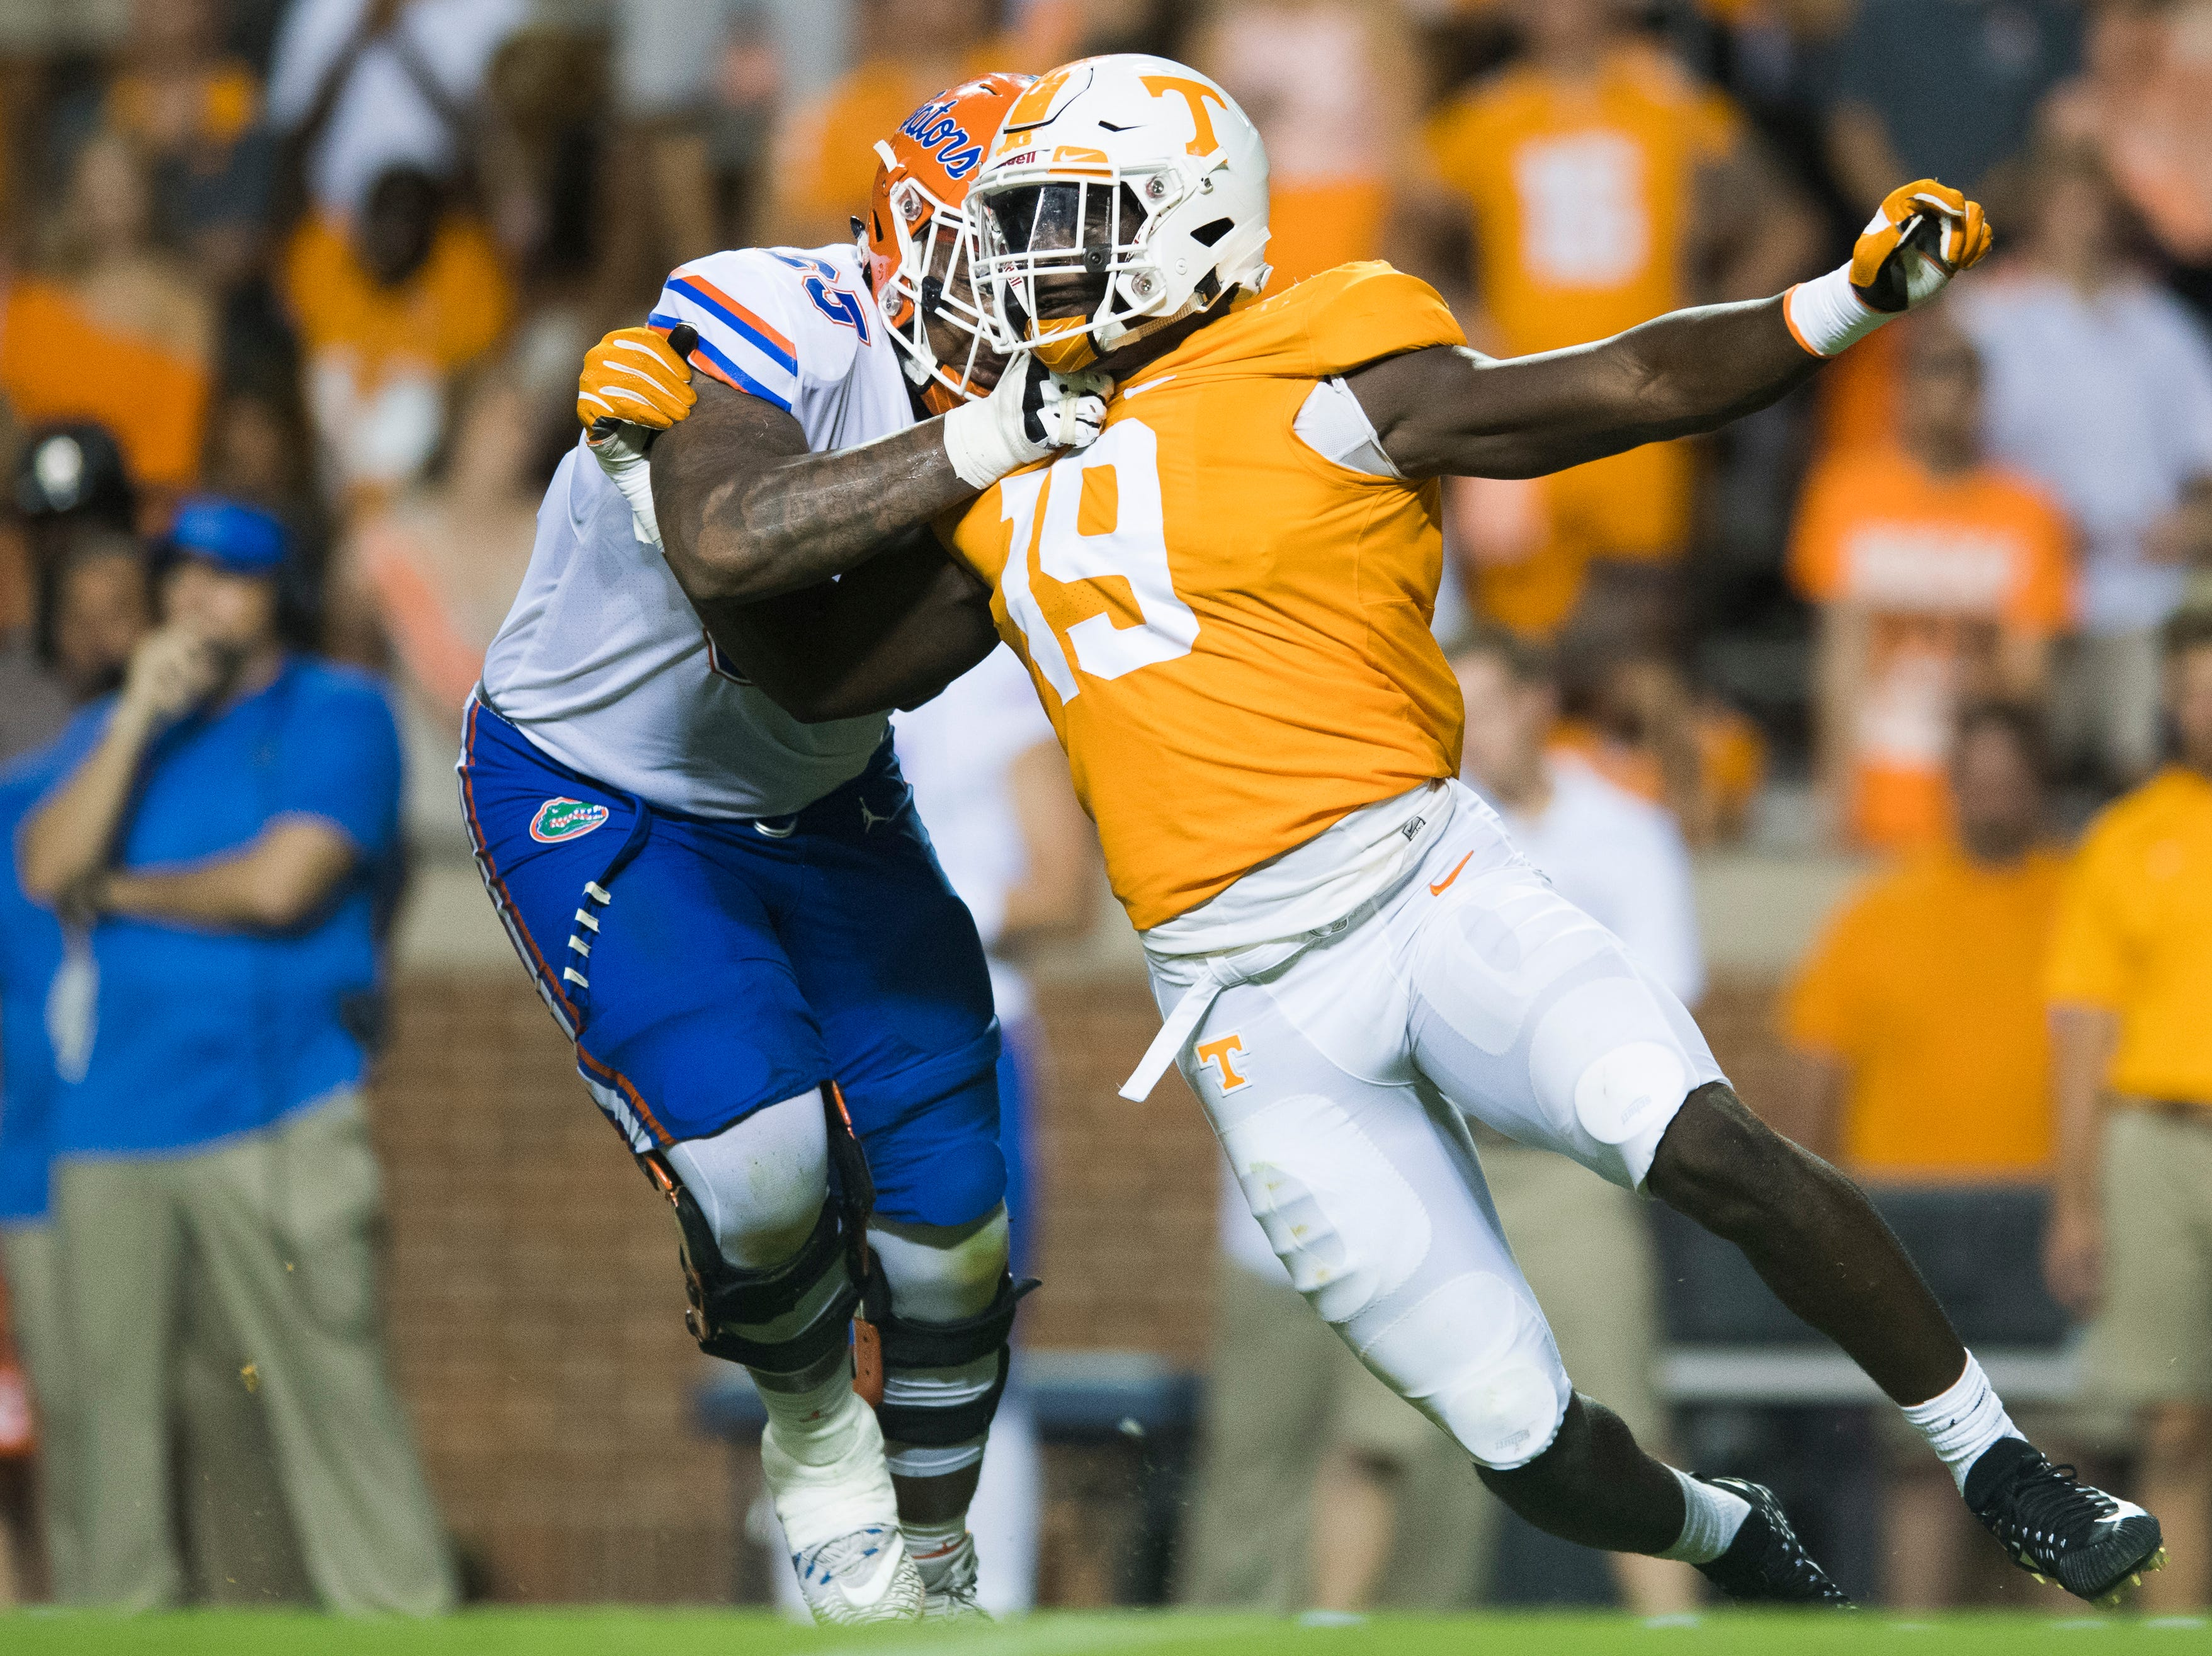 Tennessee linebacker Darrell Taylor (19) works around Florida offensive lineman Jawaan Taylor (65) during a game between Tennessee and Florida at Neyland Stadium in Knoxville, Tennessee on Saturday, September 22, 2018.